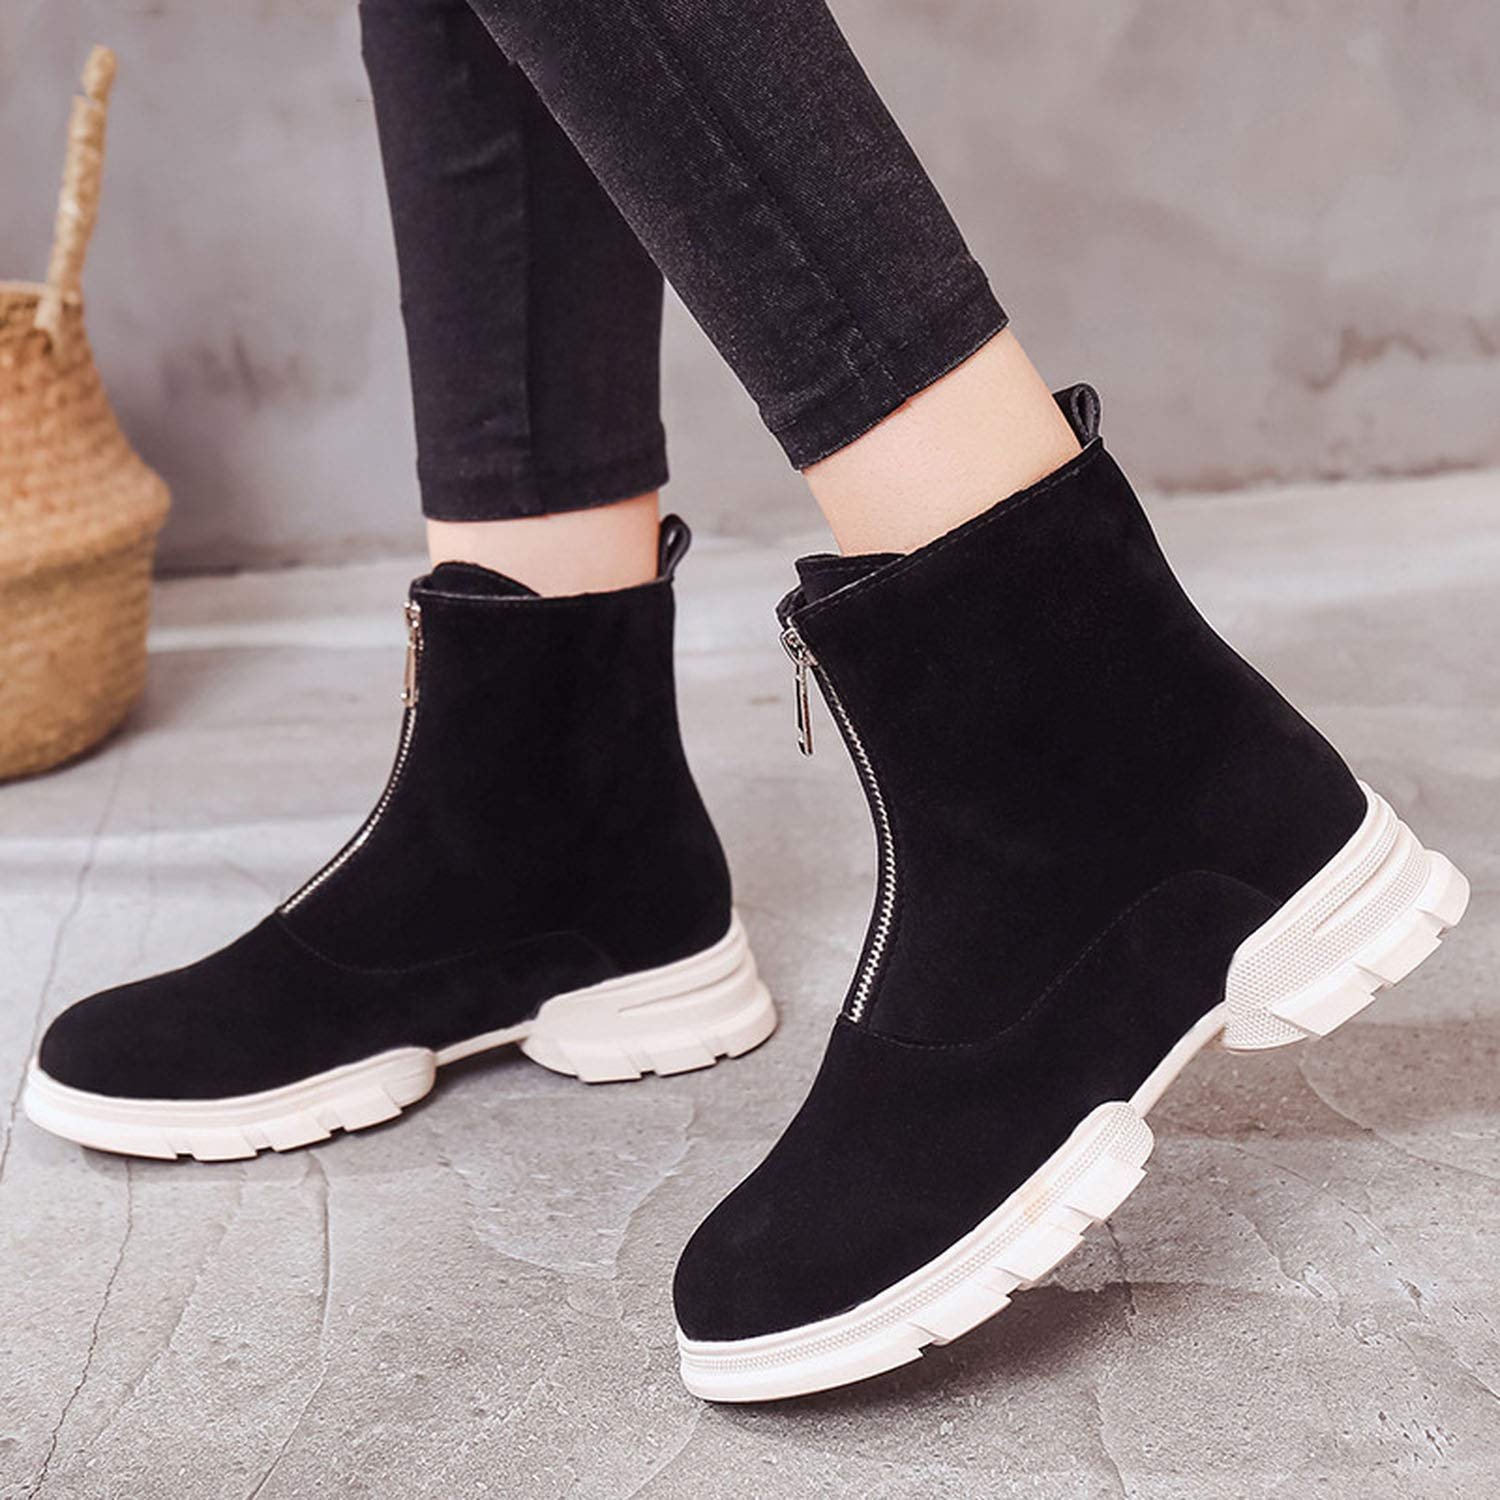 Amazon.com | Fragrancety 2018 Luxury Snow Boots Autumn Winter Boots Women Leather Ankle Boots Ladies Platform Boots | Snow Boots